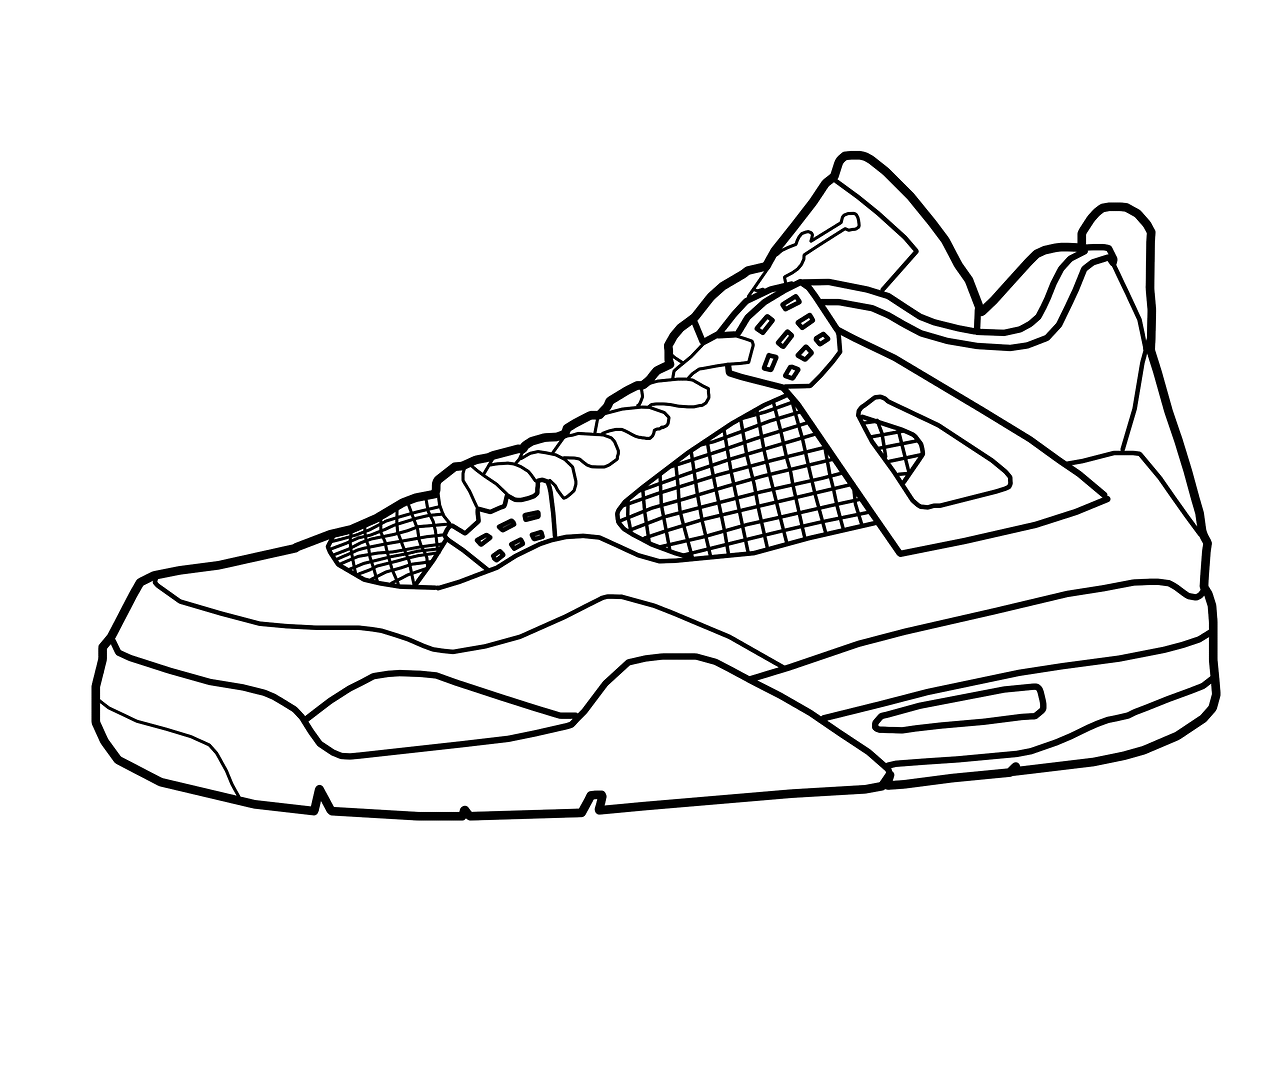 drawing of shoes image outline drawing shoe google haku shoes drawing shoes of shoes image drawing